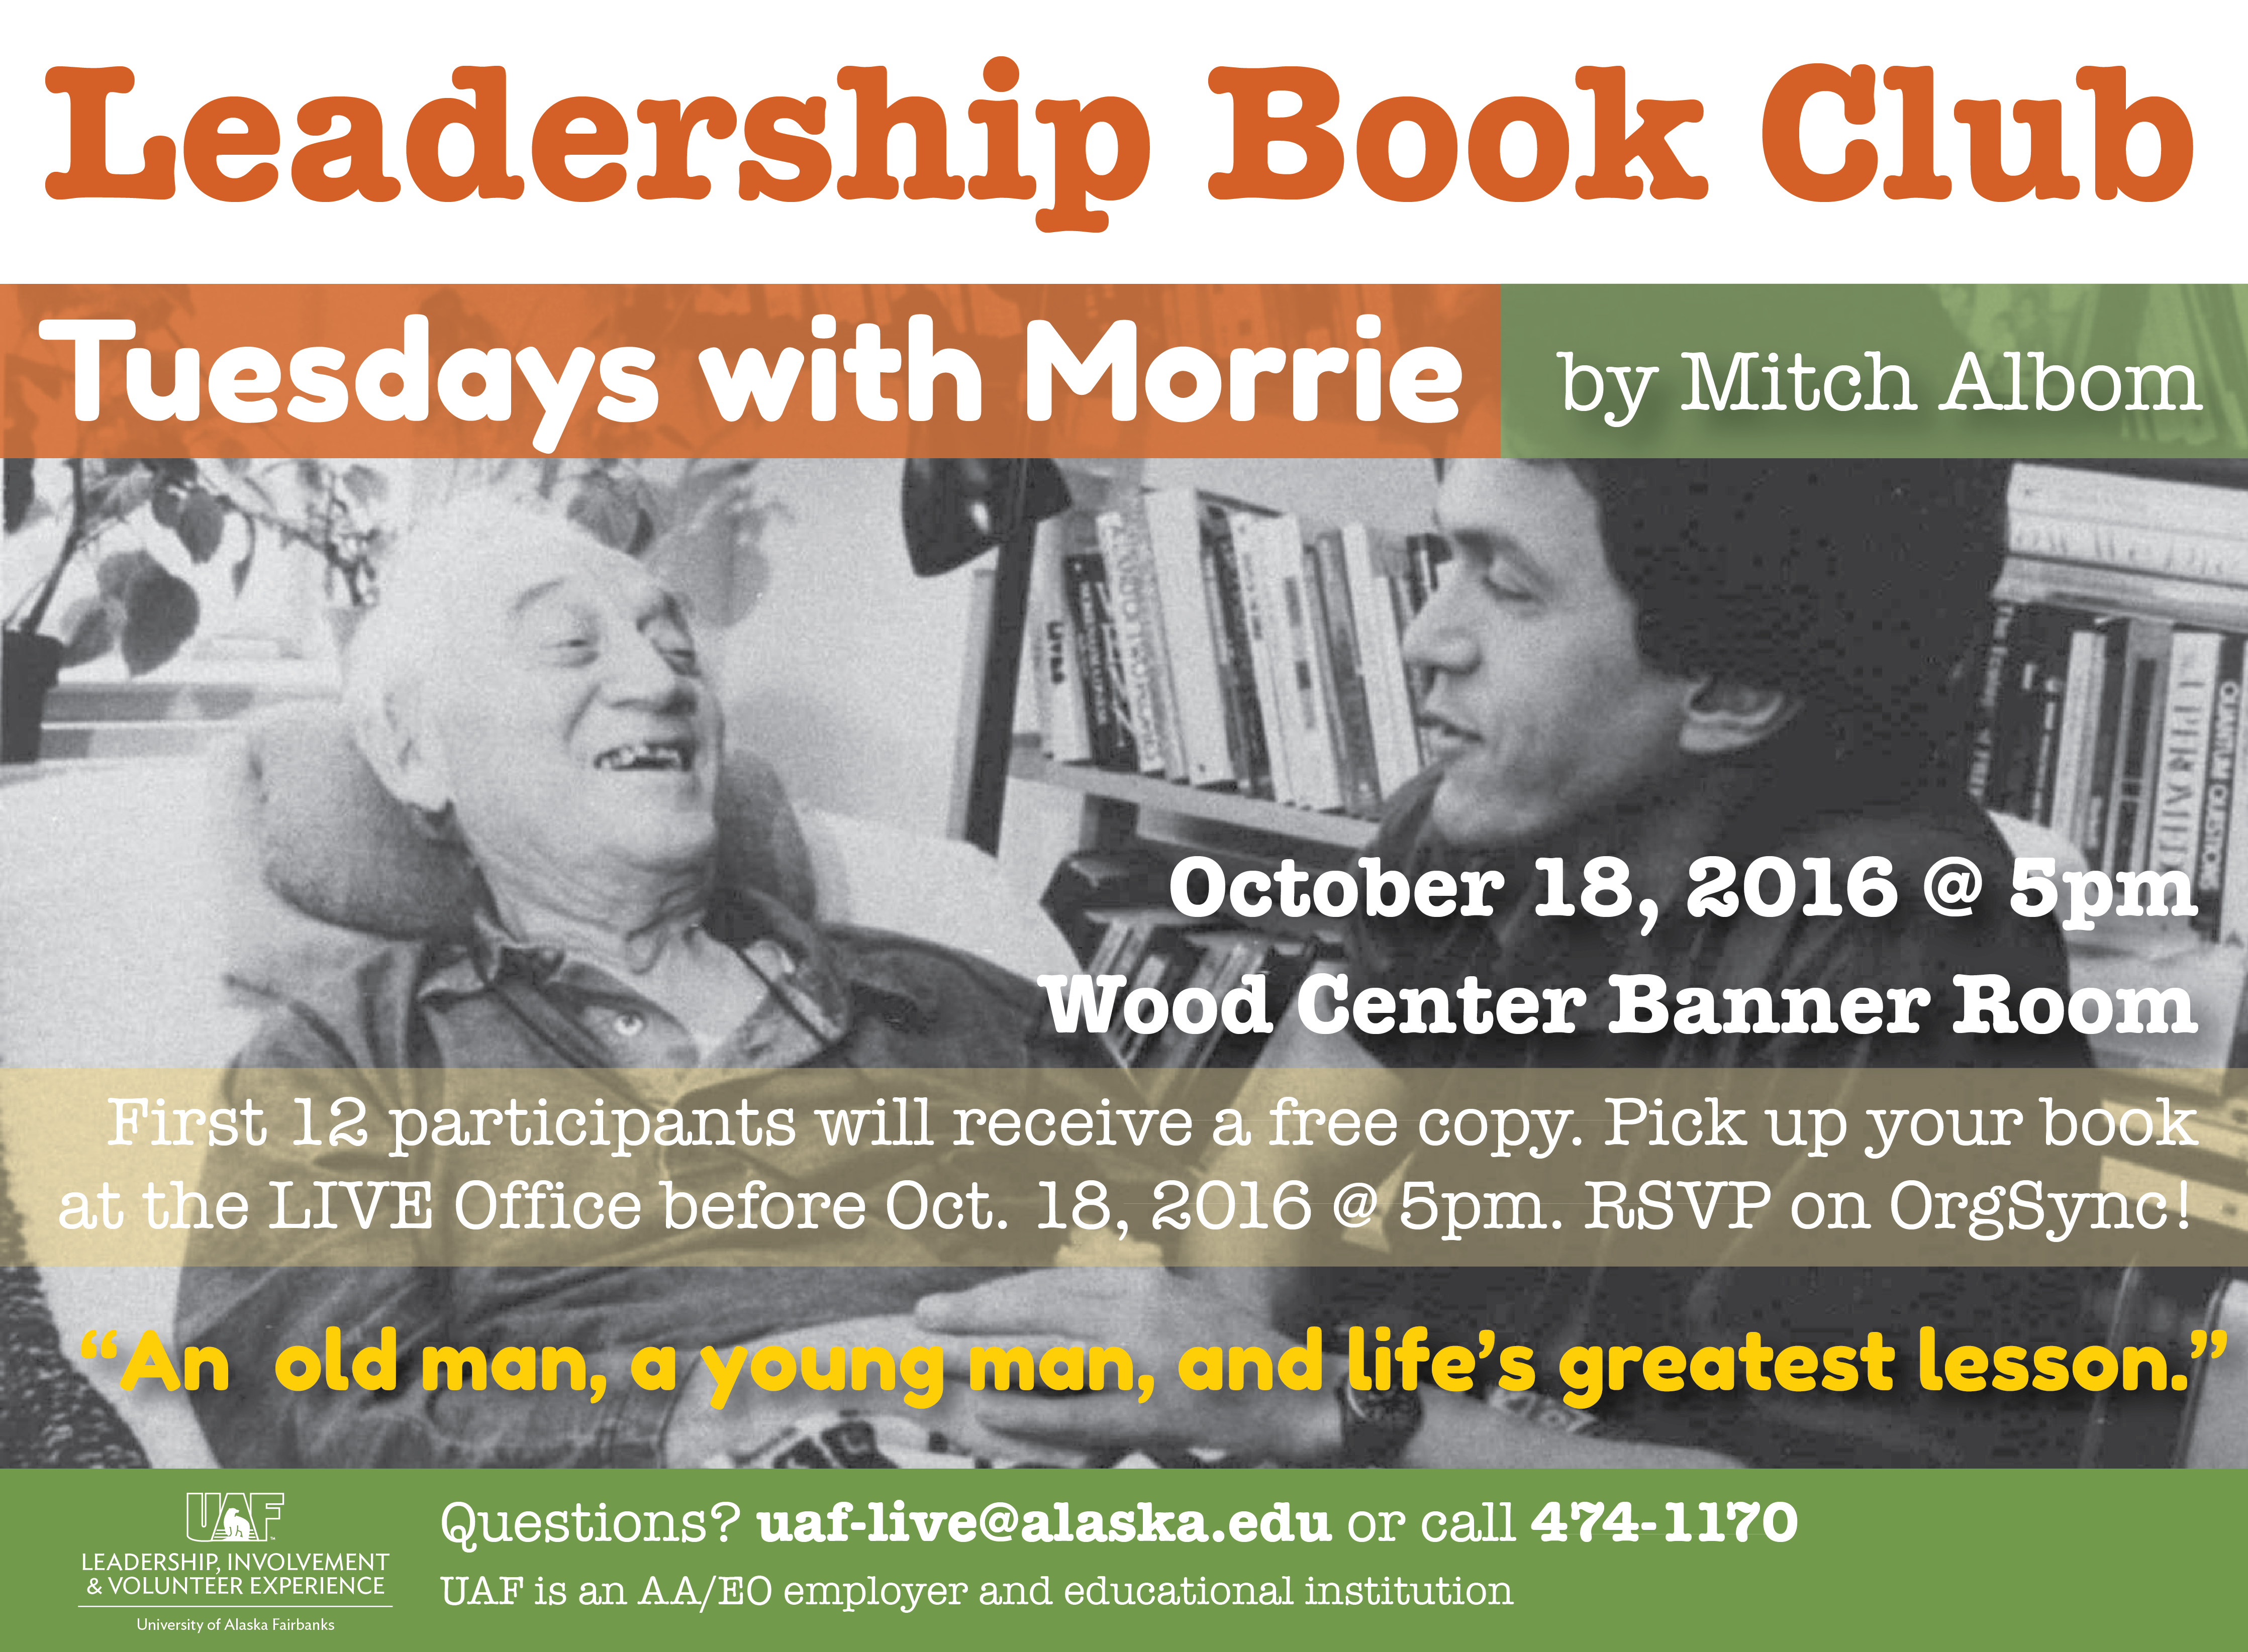 Leadership Book Club - Tuesdays with Morrie